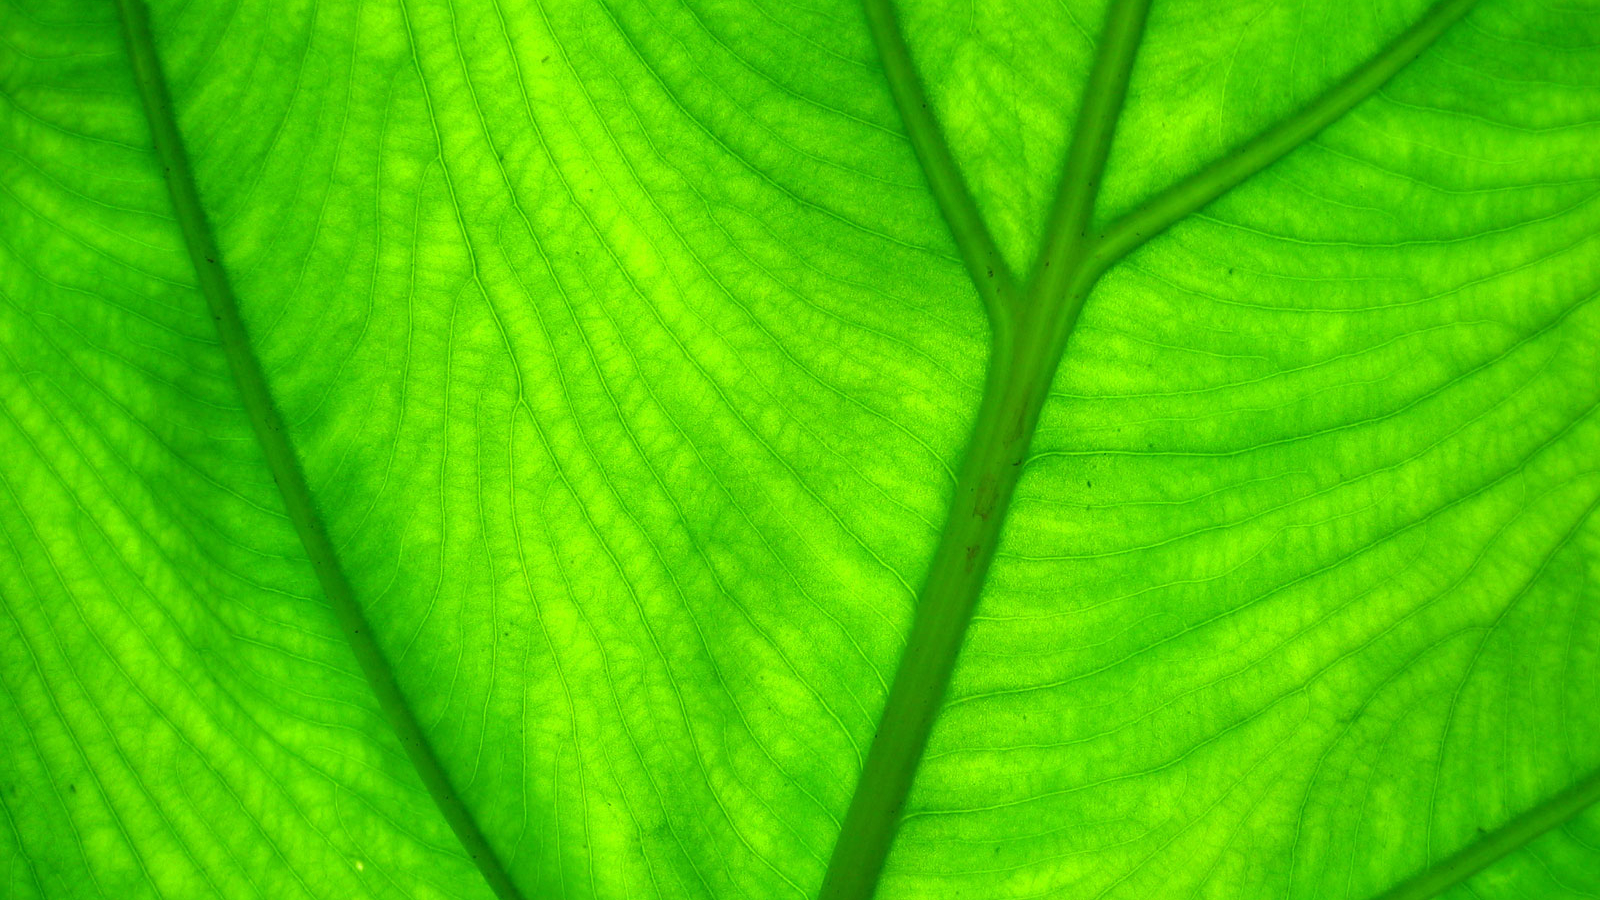 Free Download Black And White Wallpapers Green Leaf Wallpaper